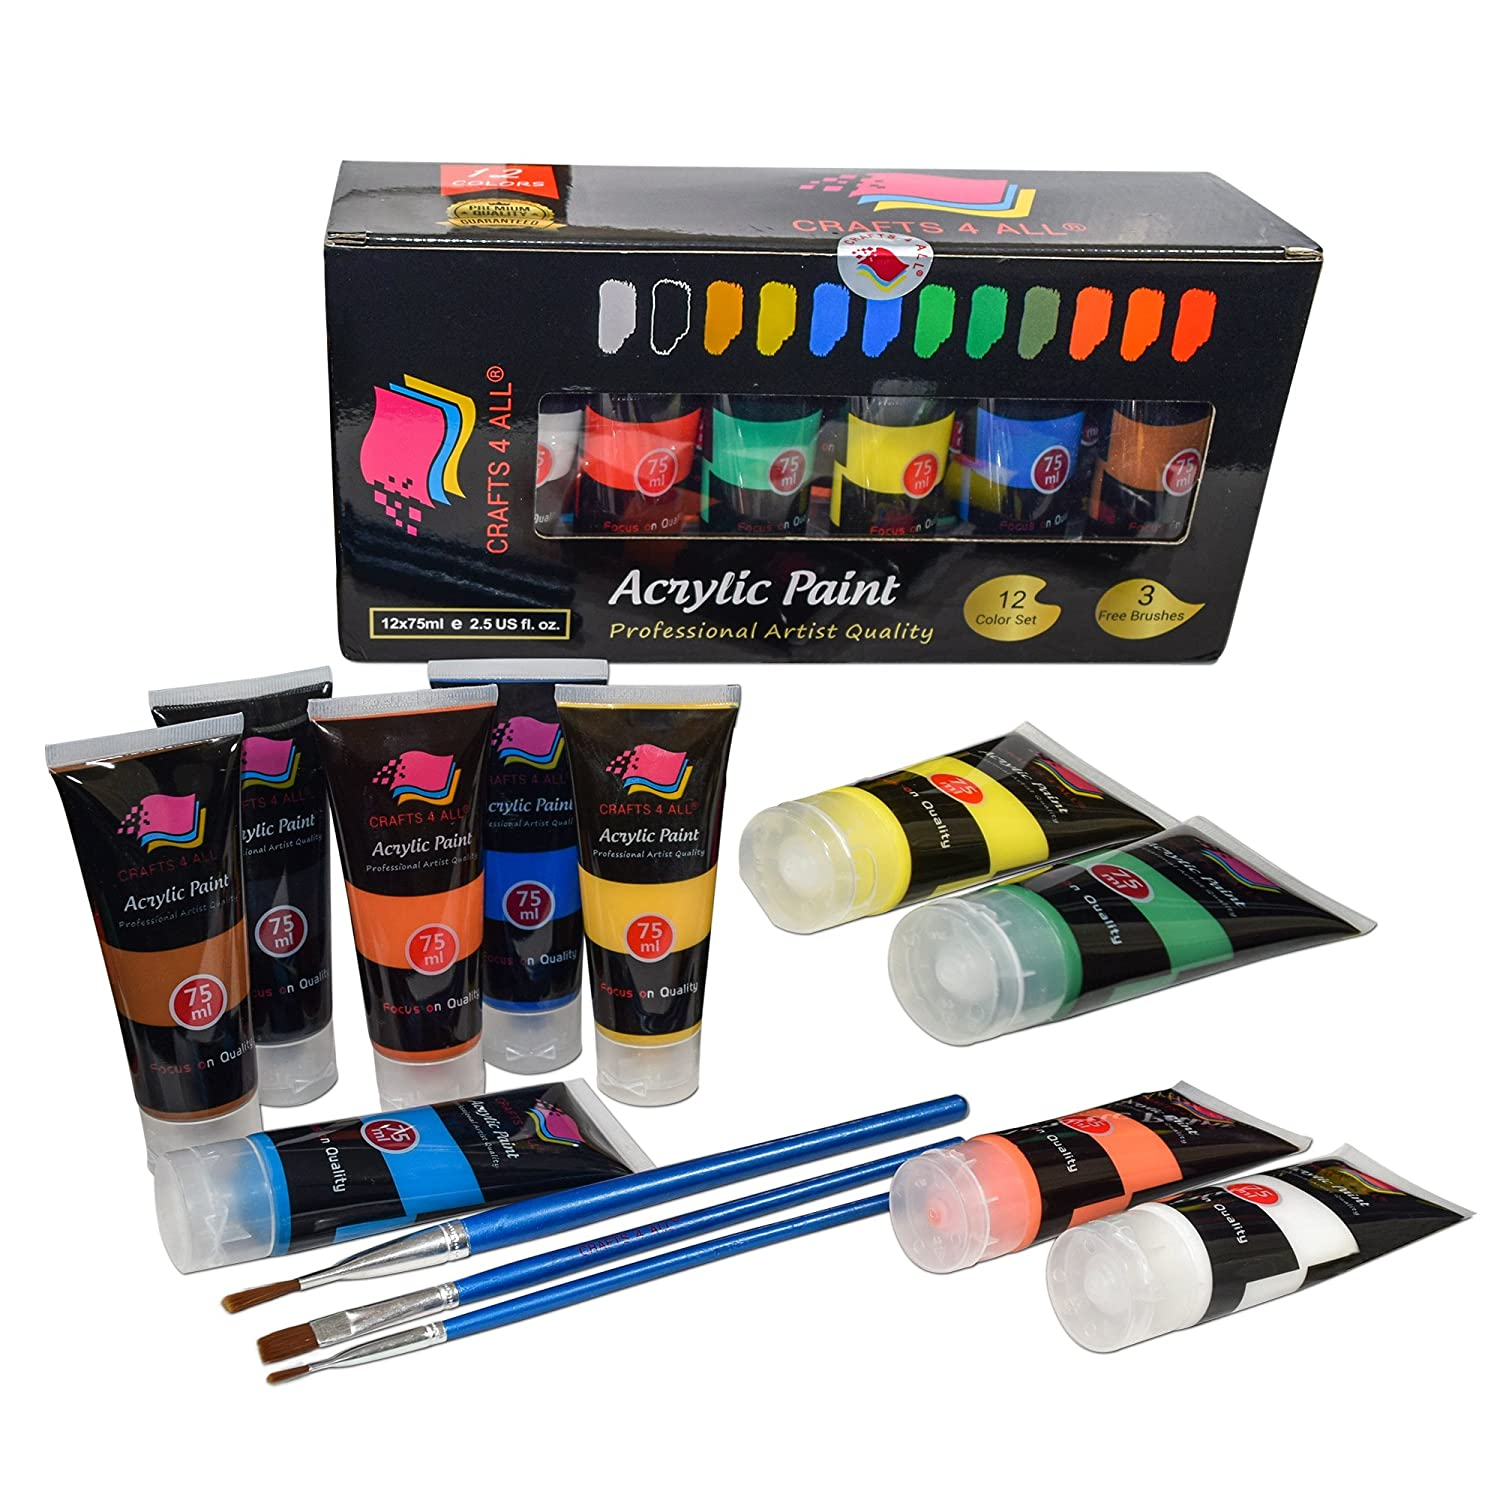 Acrylic Paint Set 12 Colours by Crafts 4 ALL Perfect For Canvas, Wood, Ceramic, Fabric. Non toxic & Vibrant Colors. Rich Pigments Lasting Quality For Beginners, Students & Professional Artist 4336956000